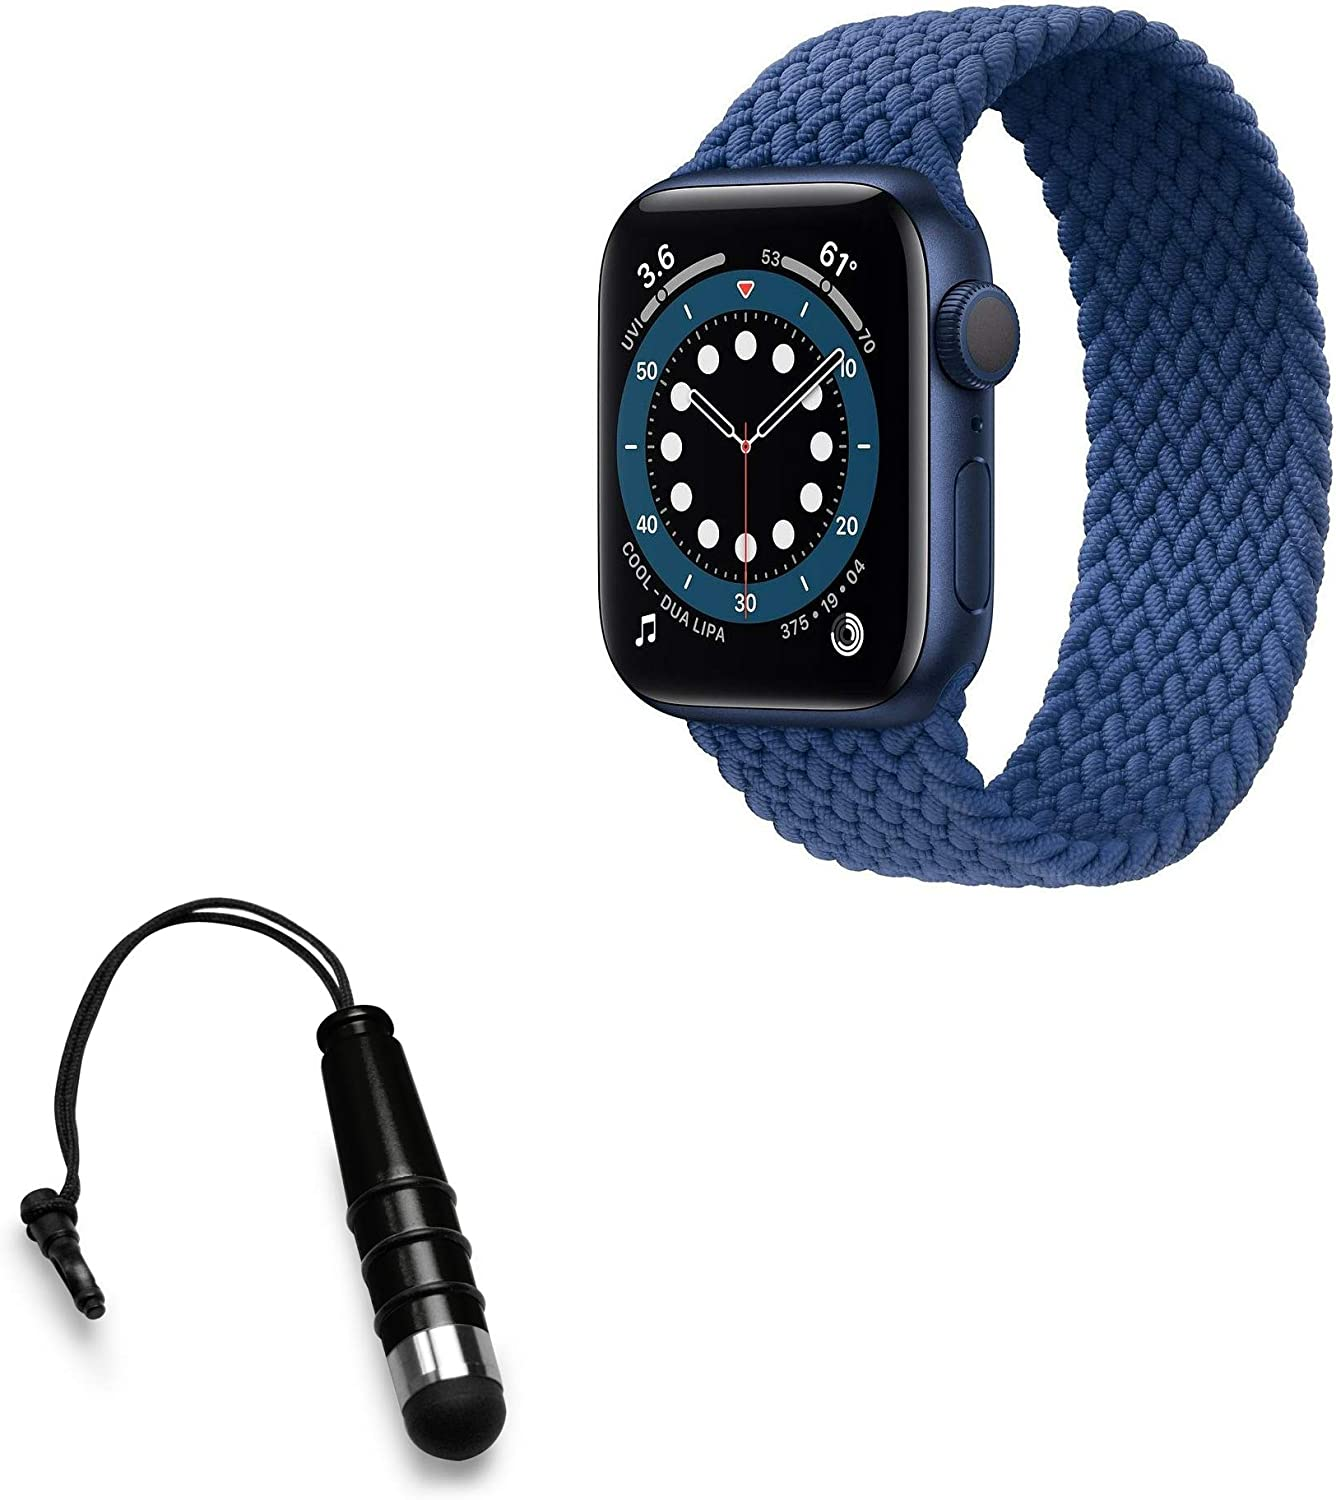 Stylus Pen for Apple Watch Series 6 (40mm) (Stylus Pen by BoxWave) - Mini Capacitive Stylus, Small Rubber Tip Capacitive Stylus Pen for Apple Watch Series 6 (40mm) - Jet Black